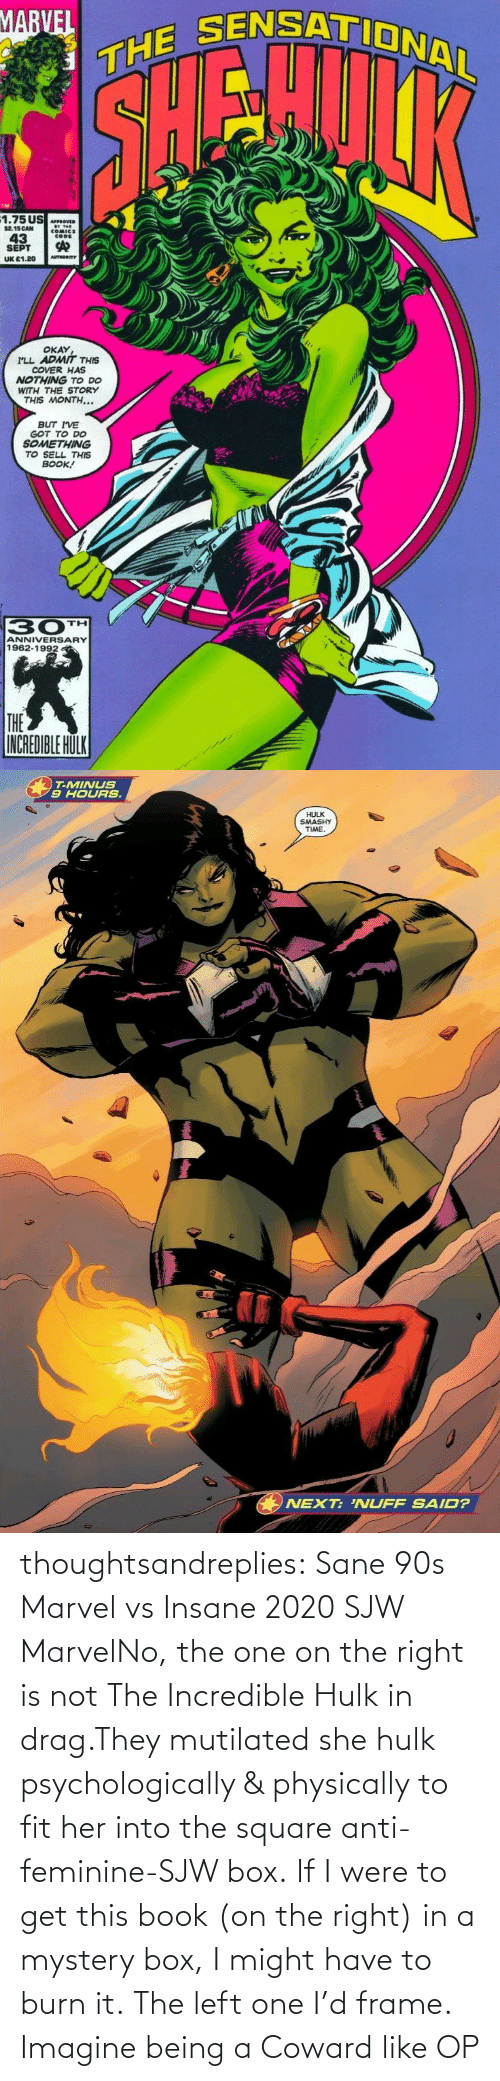 Tumblr, Hulk, and Blog: thoughtsandreplies:  Sane 90s Marvel vs Insane 2020 SJW MarvelNo, the one on the right is not The Incredible Hulk in drag.They mutilated she hulk psychologically & physically to fit her into the square anti-feminine-SJW box. If I were to get this book (on the right) in a mystery box, I might have to burn it. The left one I'd frame.    Imagine being a Coward like OP